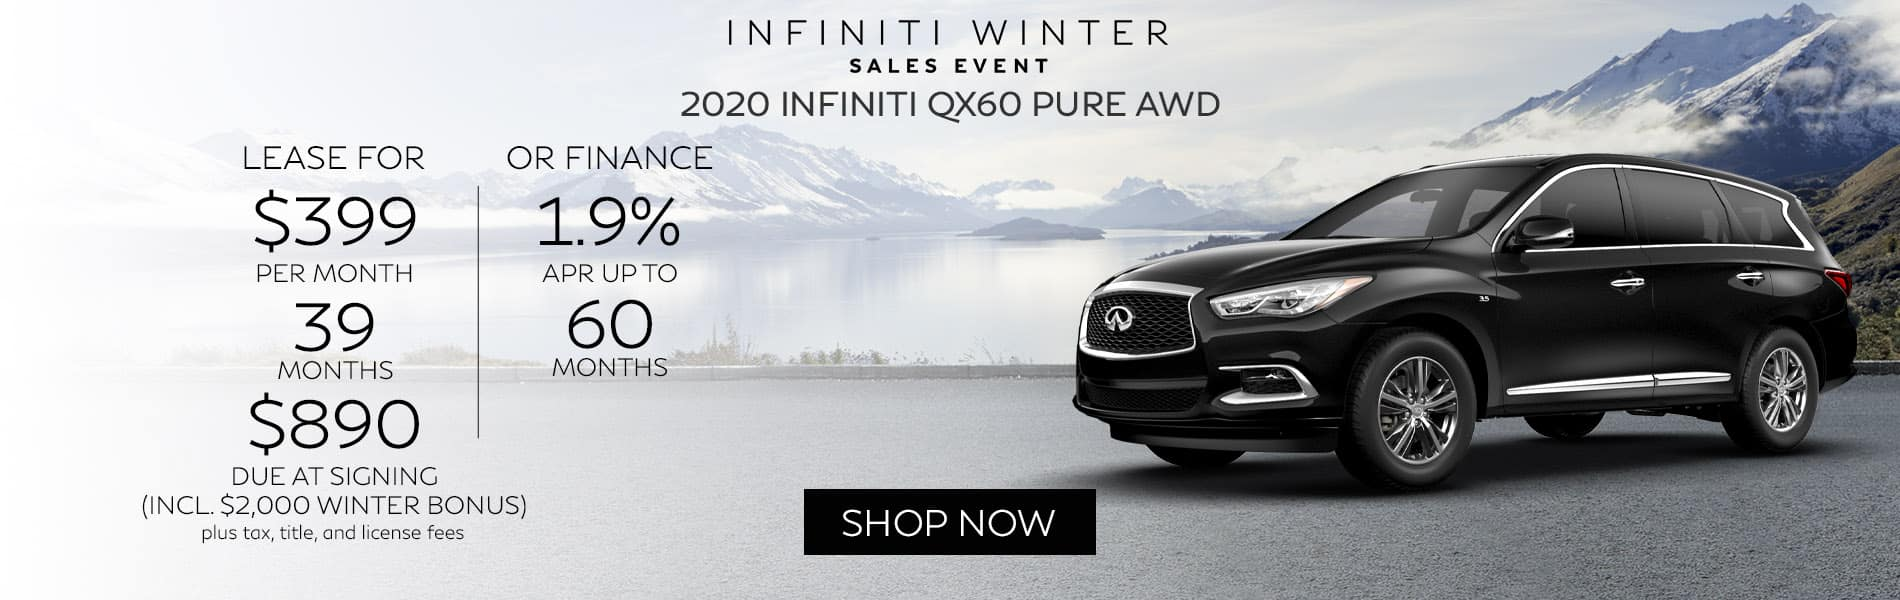 Lease a new 2020 INFINITI QX60 PURE AWD for $399 per month with just $890 due out of pocket.